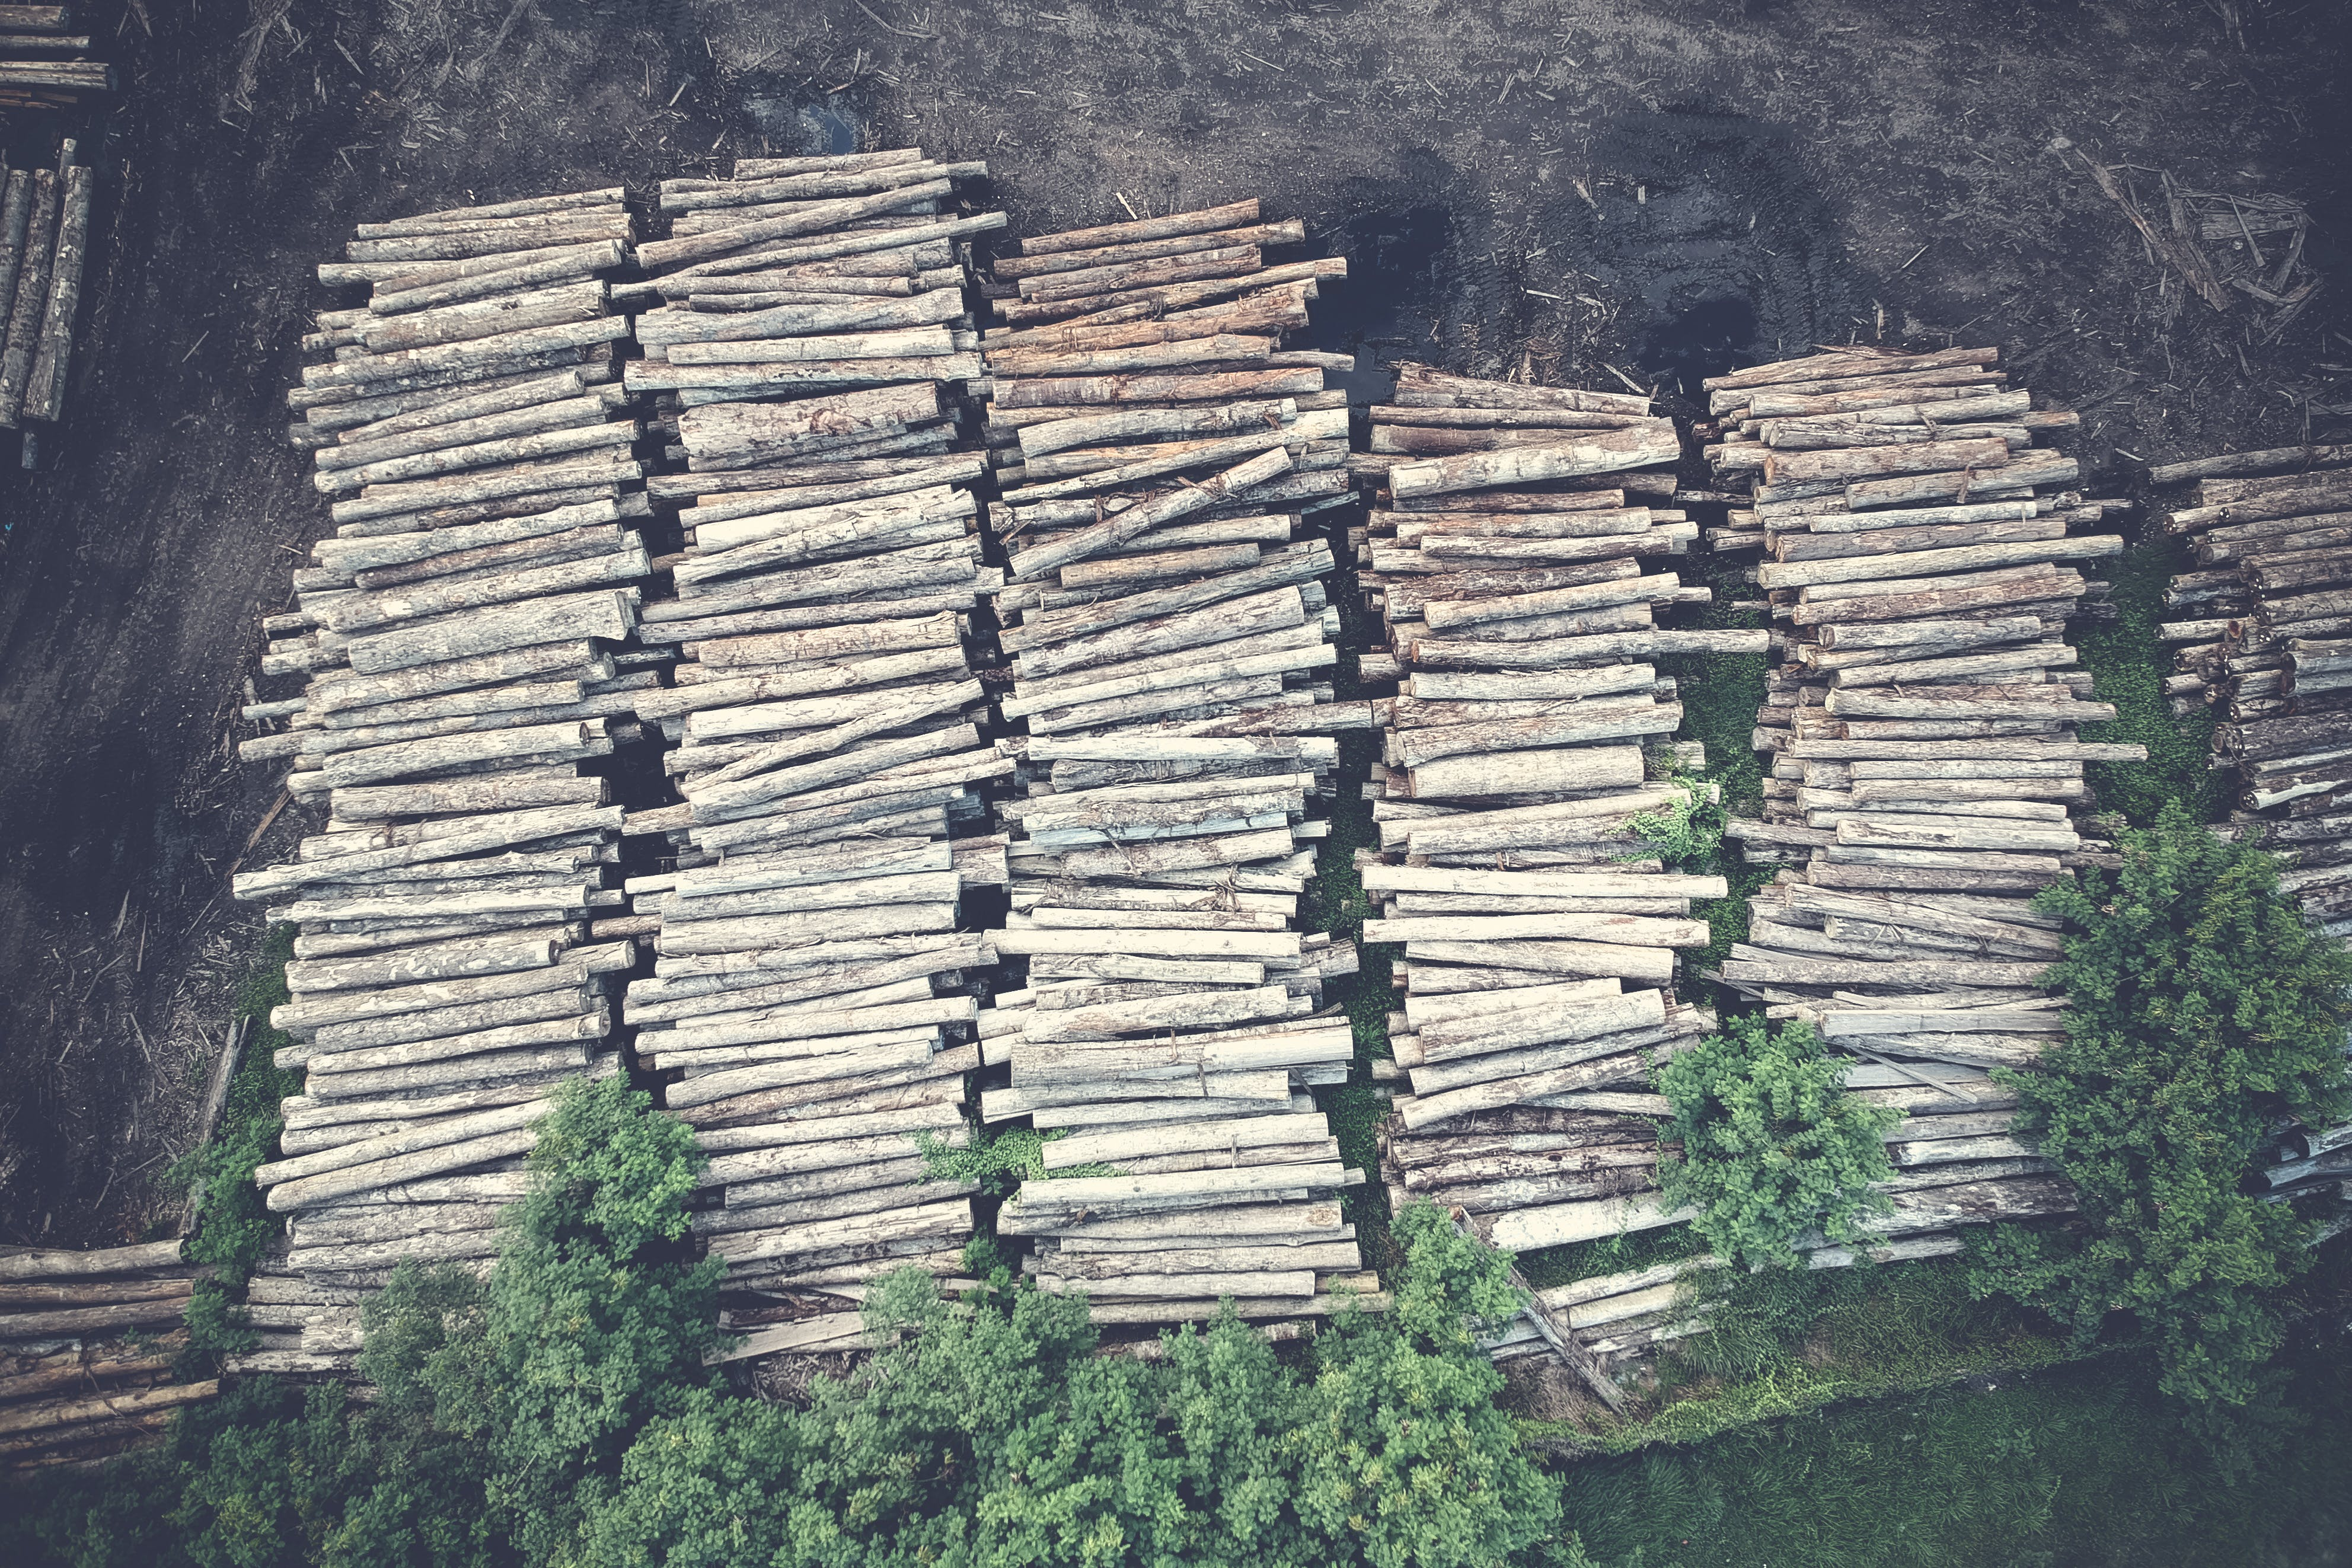 Aerial Photography of Stack of Firewood